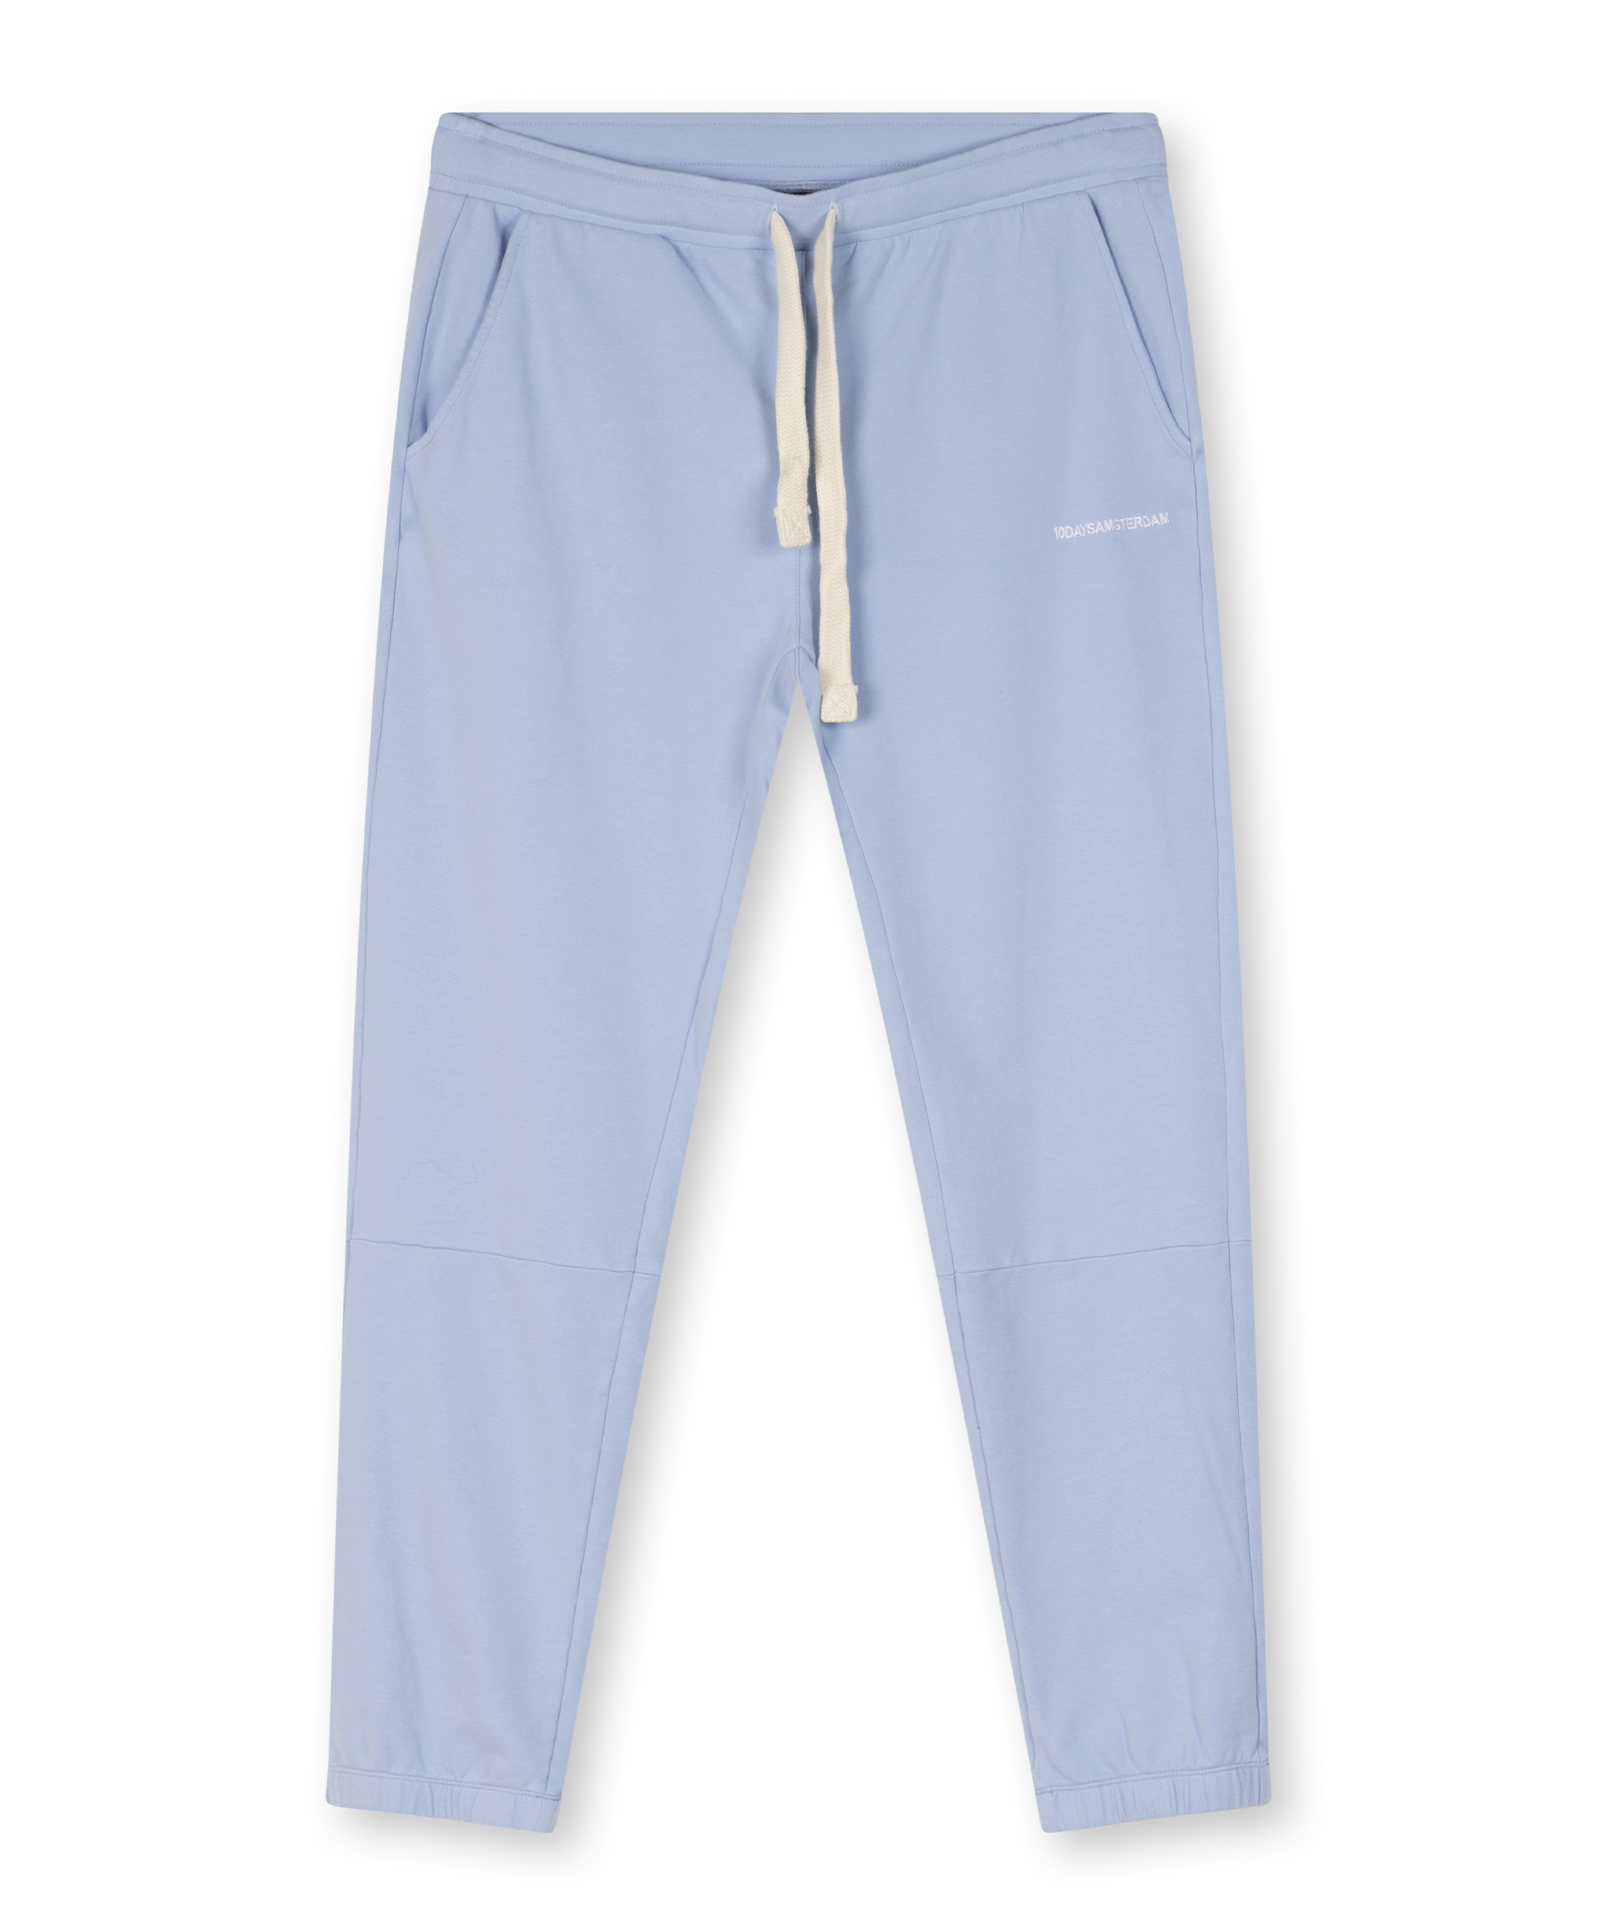 10Days Cropped jogger classic blue